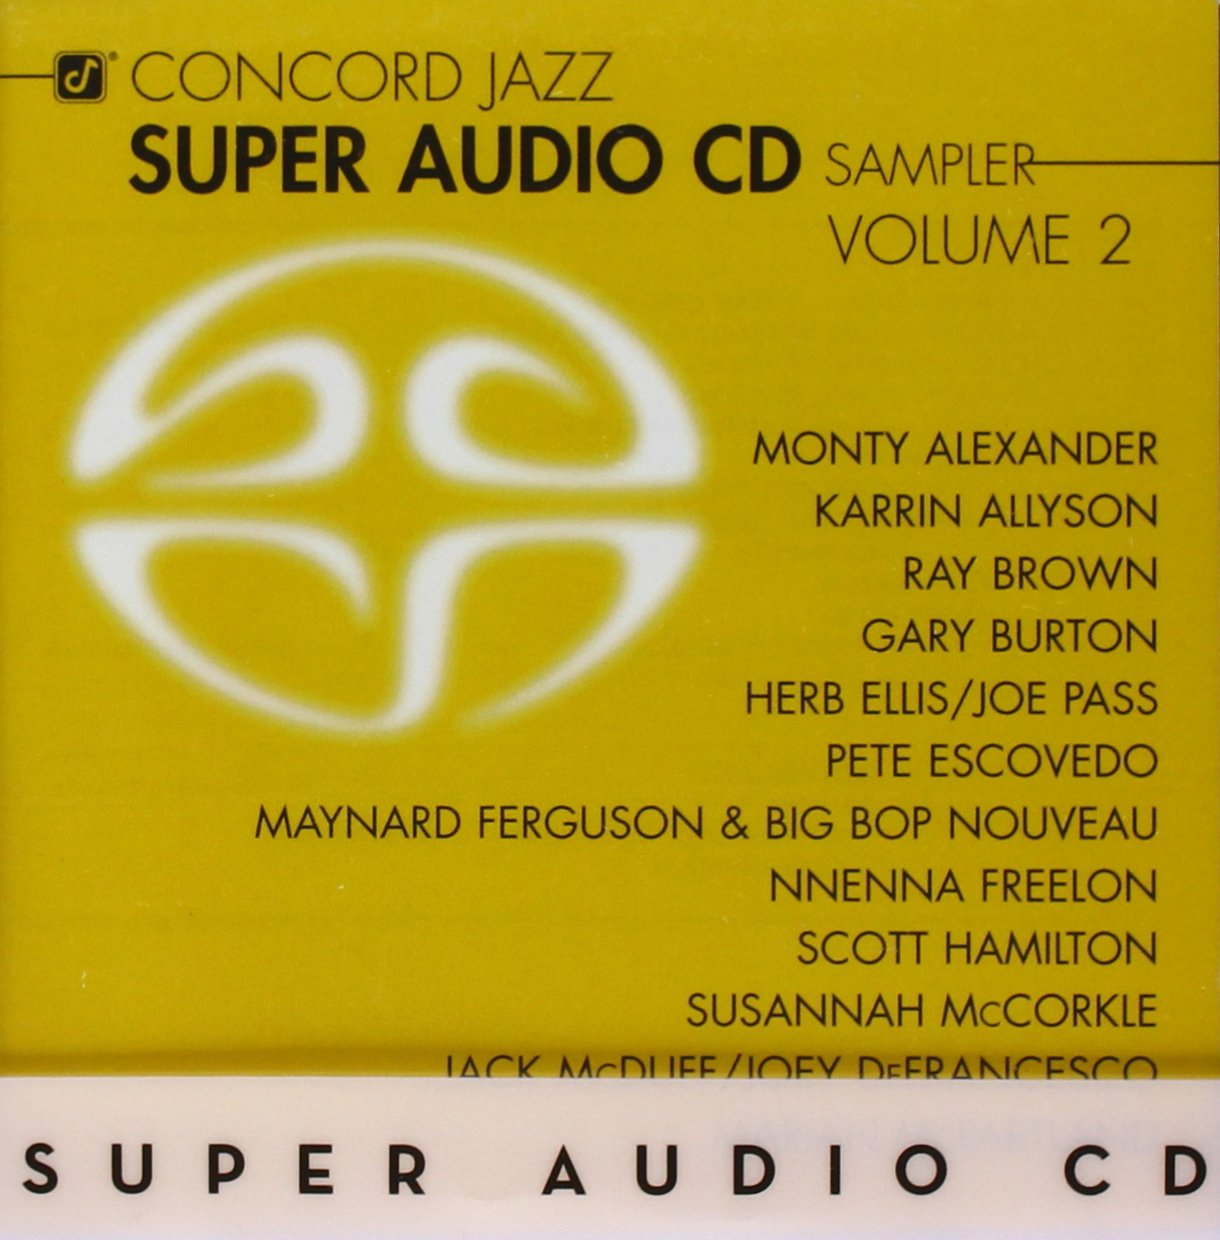 Concord Jazz Super Audio CD Sampler Volume 2